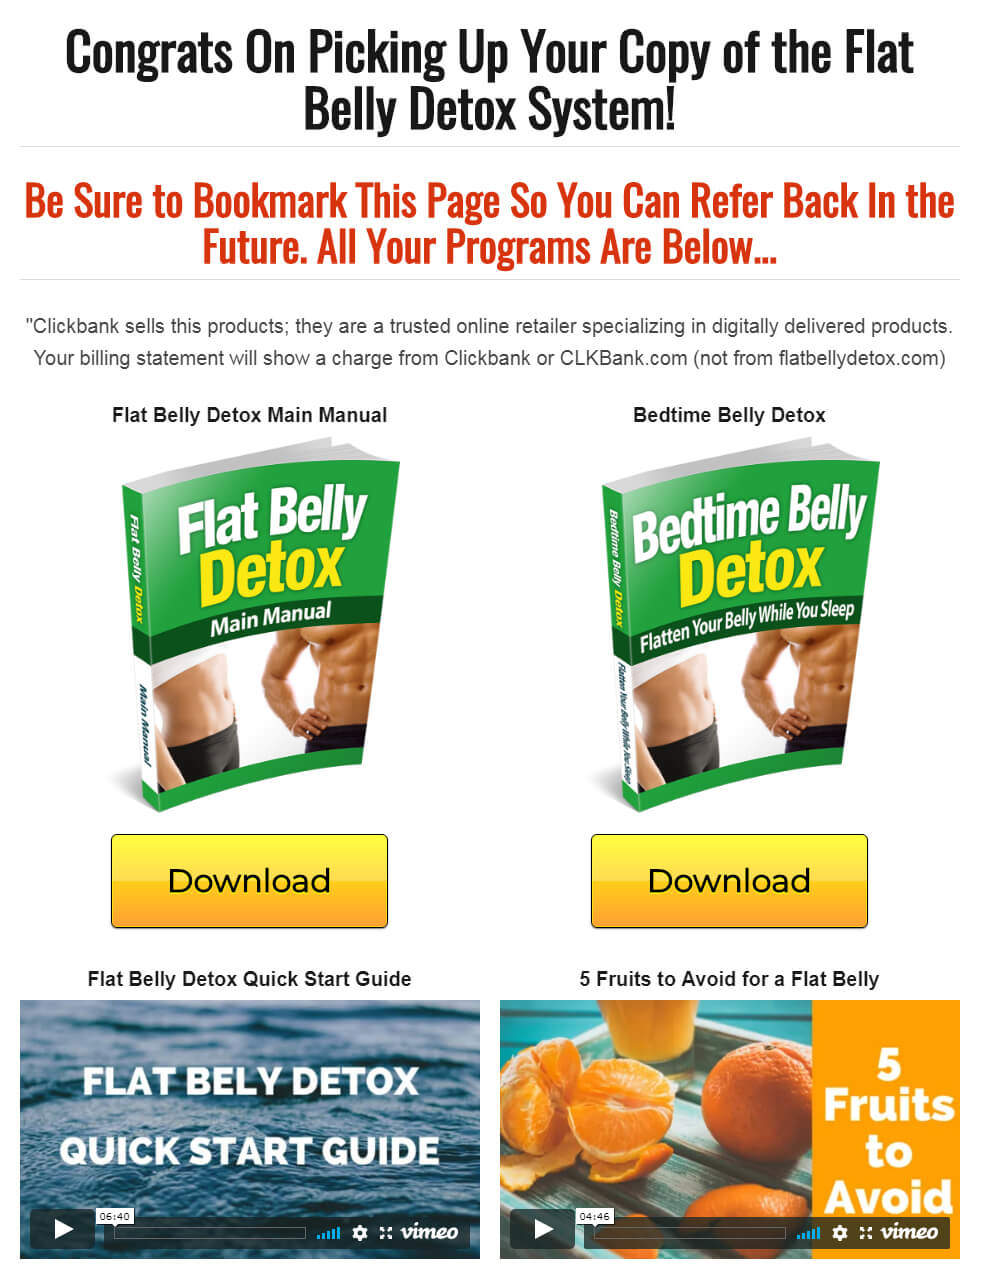 Flat Belly Detox Download Page